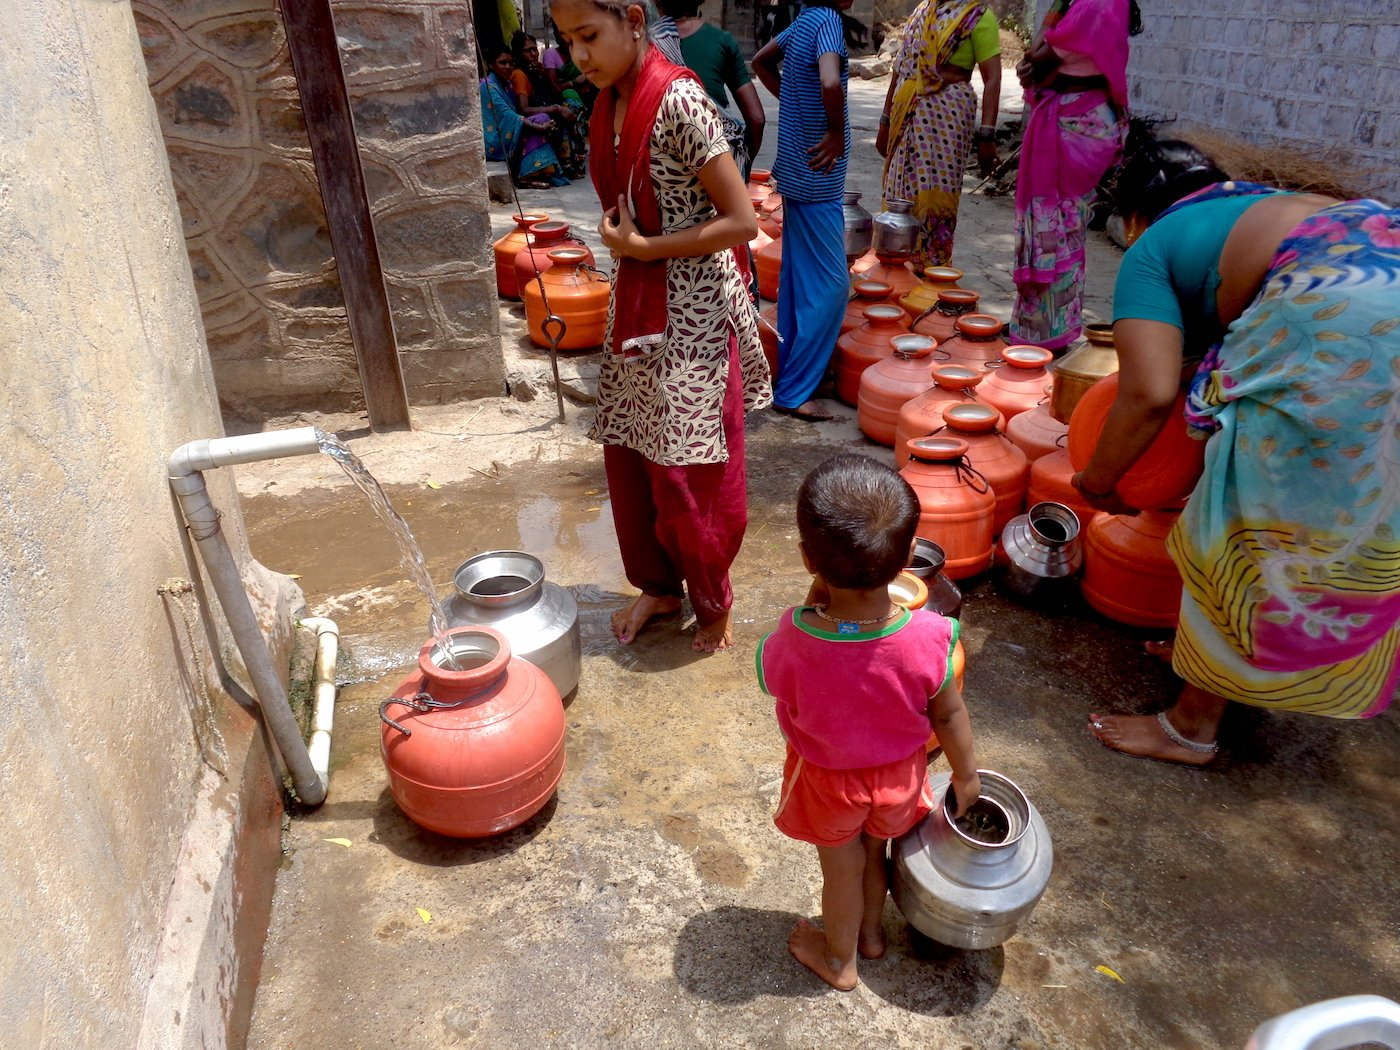 Wells of Despair: The Desperation for Water